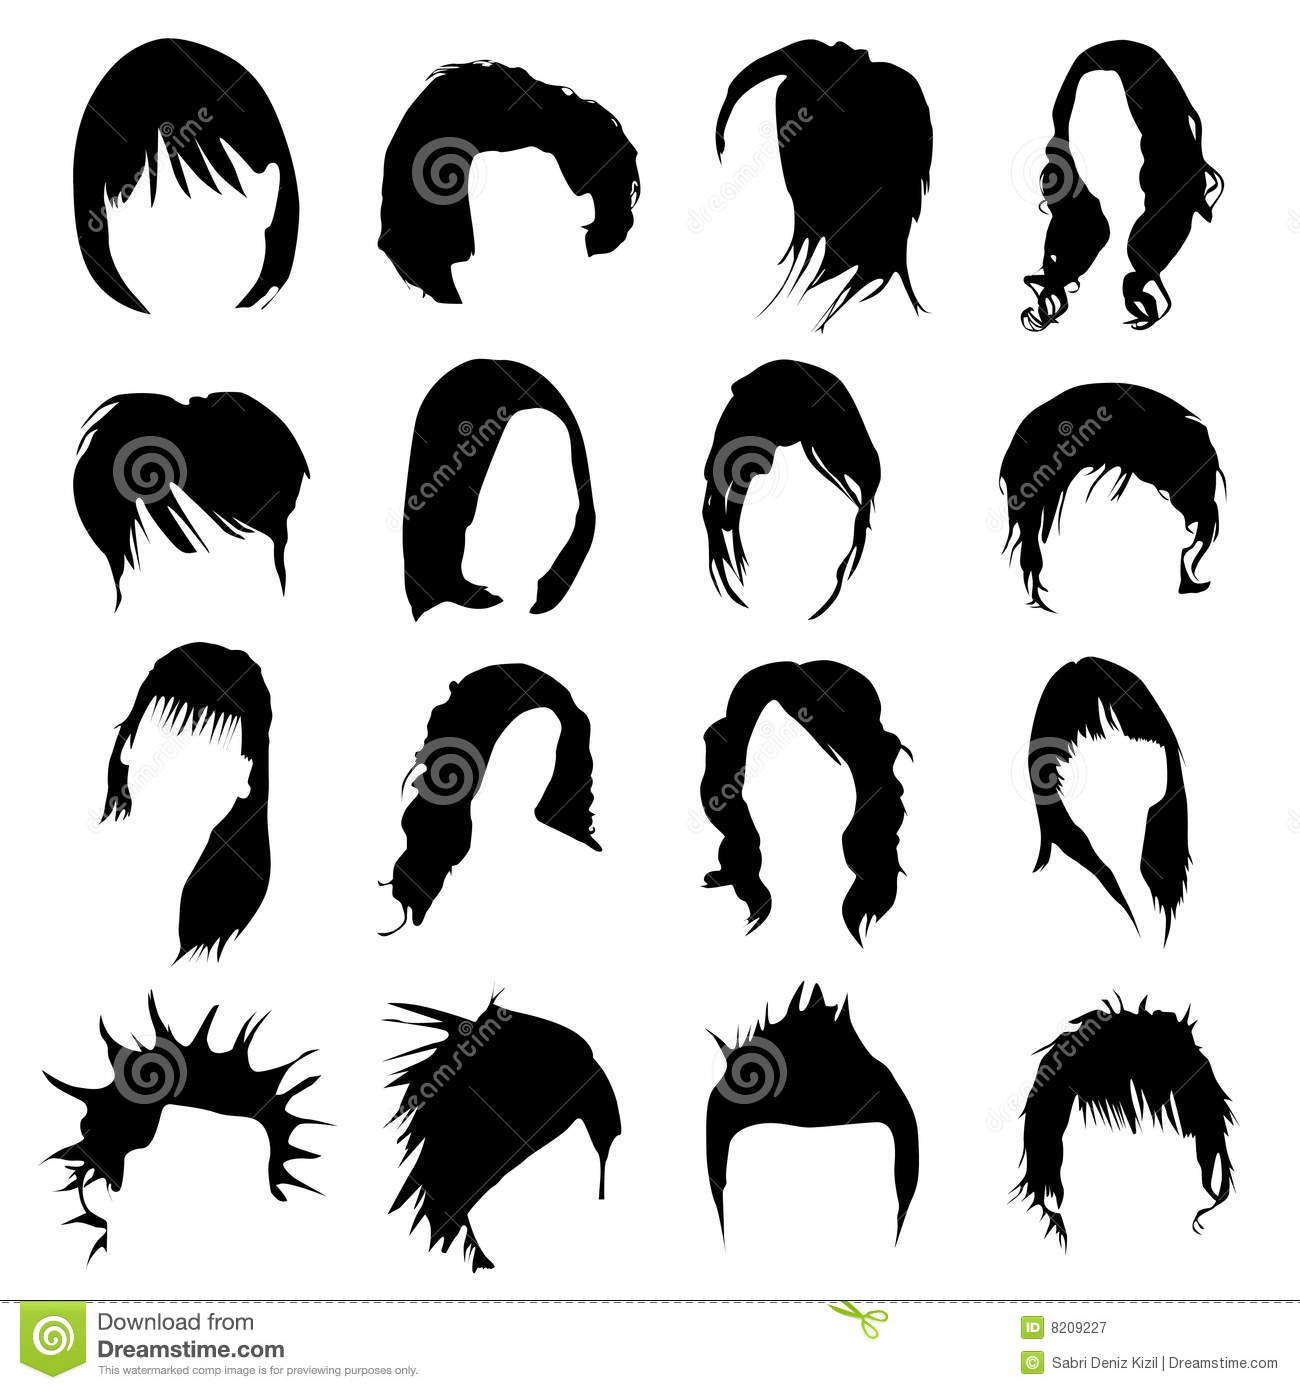 Hairstyle app download boy